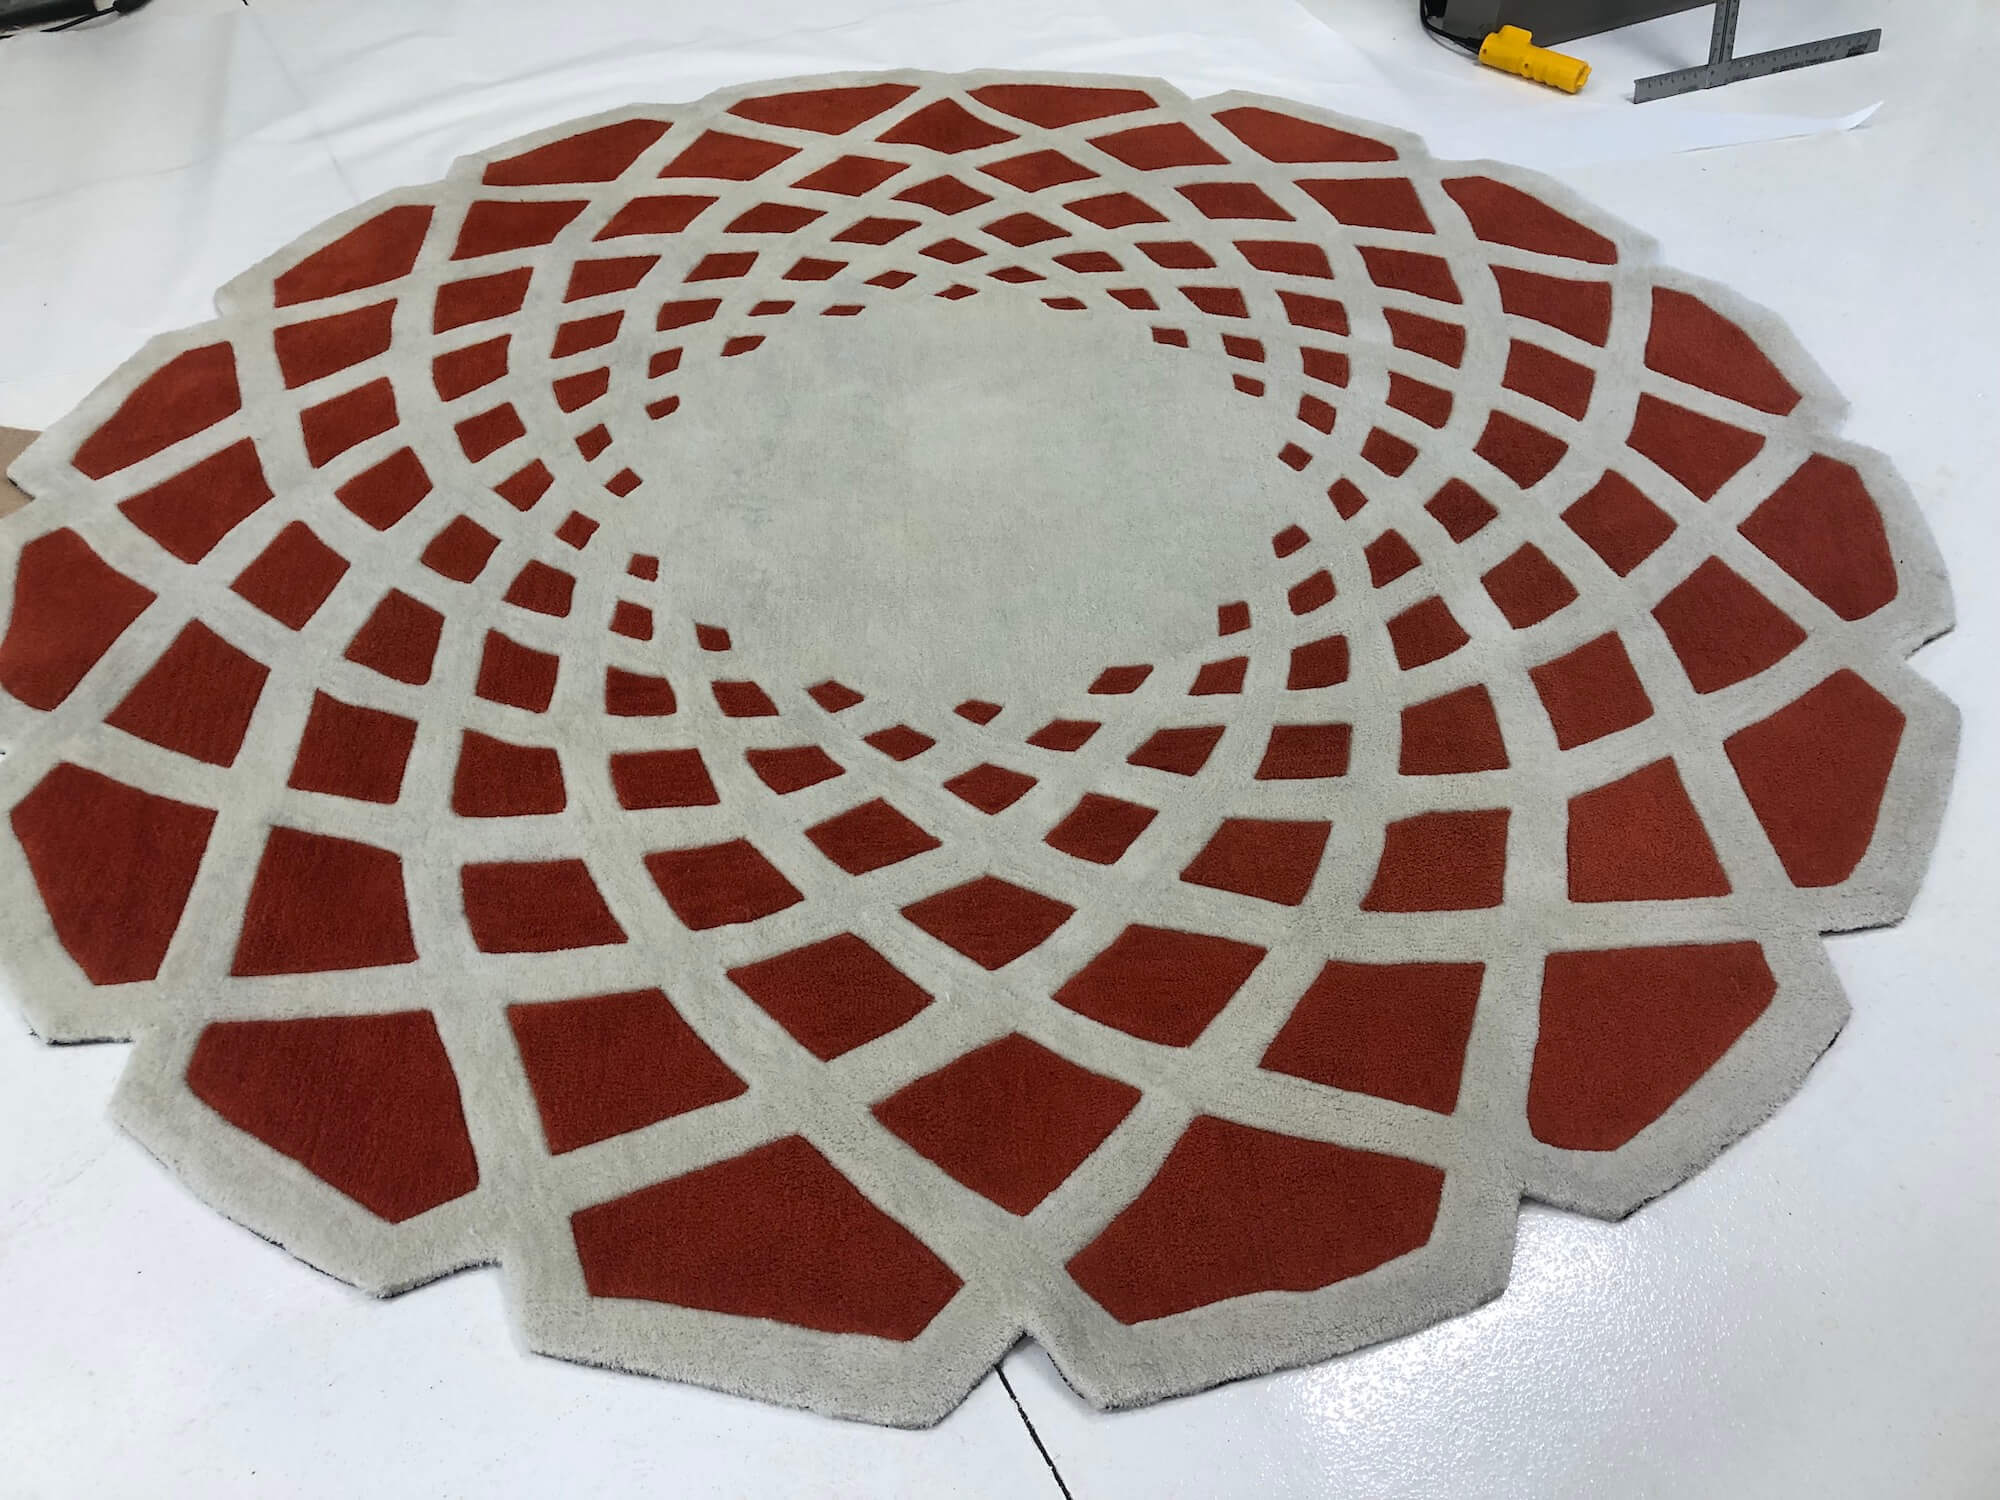 Chem-Dry Cleaned Red Rug